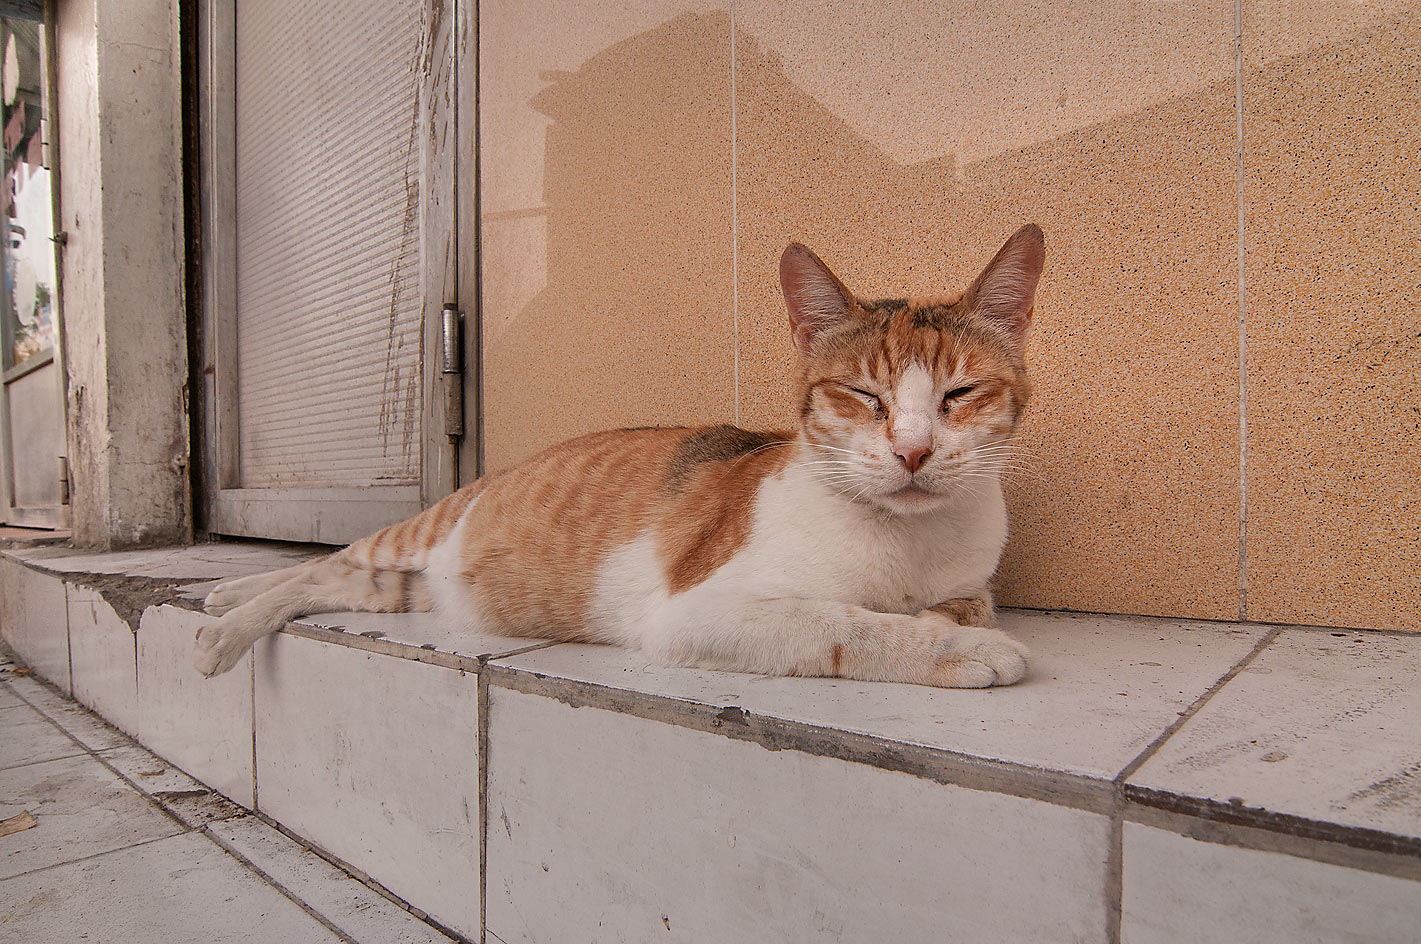 Bicolor arabian mau cat sleeping on above ground...St., Musheirib area. Doha, Qatar